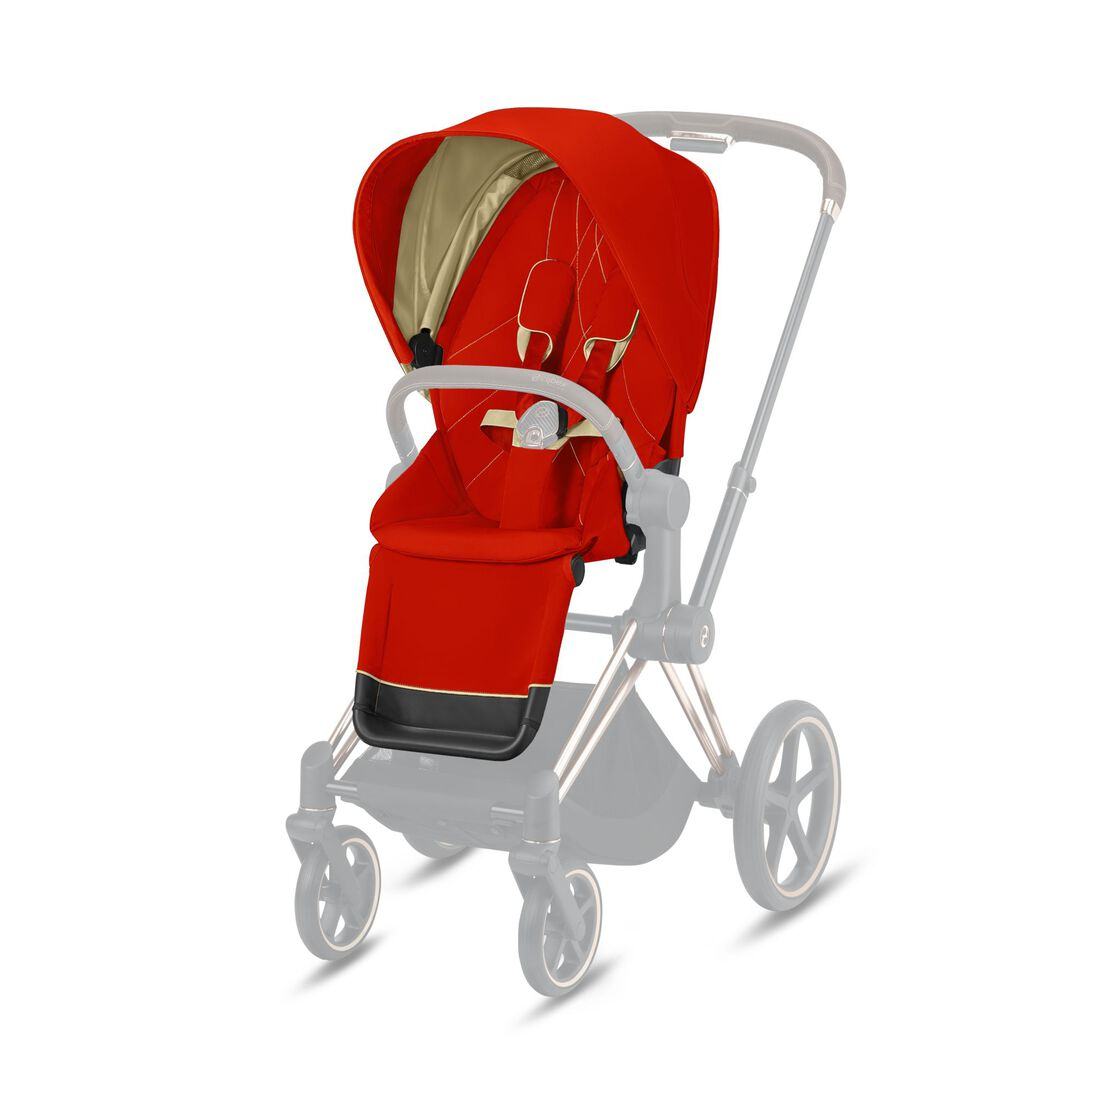 CYBEX Priam Seat Pack - Autumn Gold in Autumn Gold large image number 1